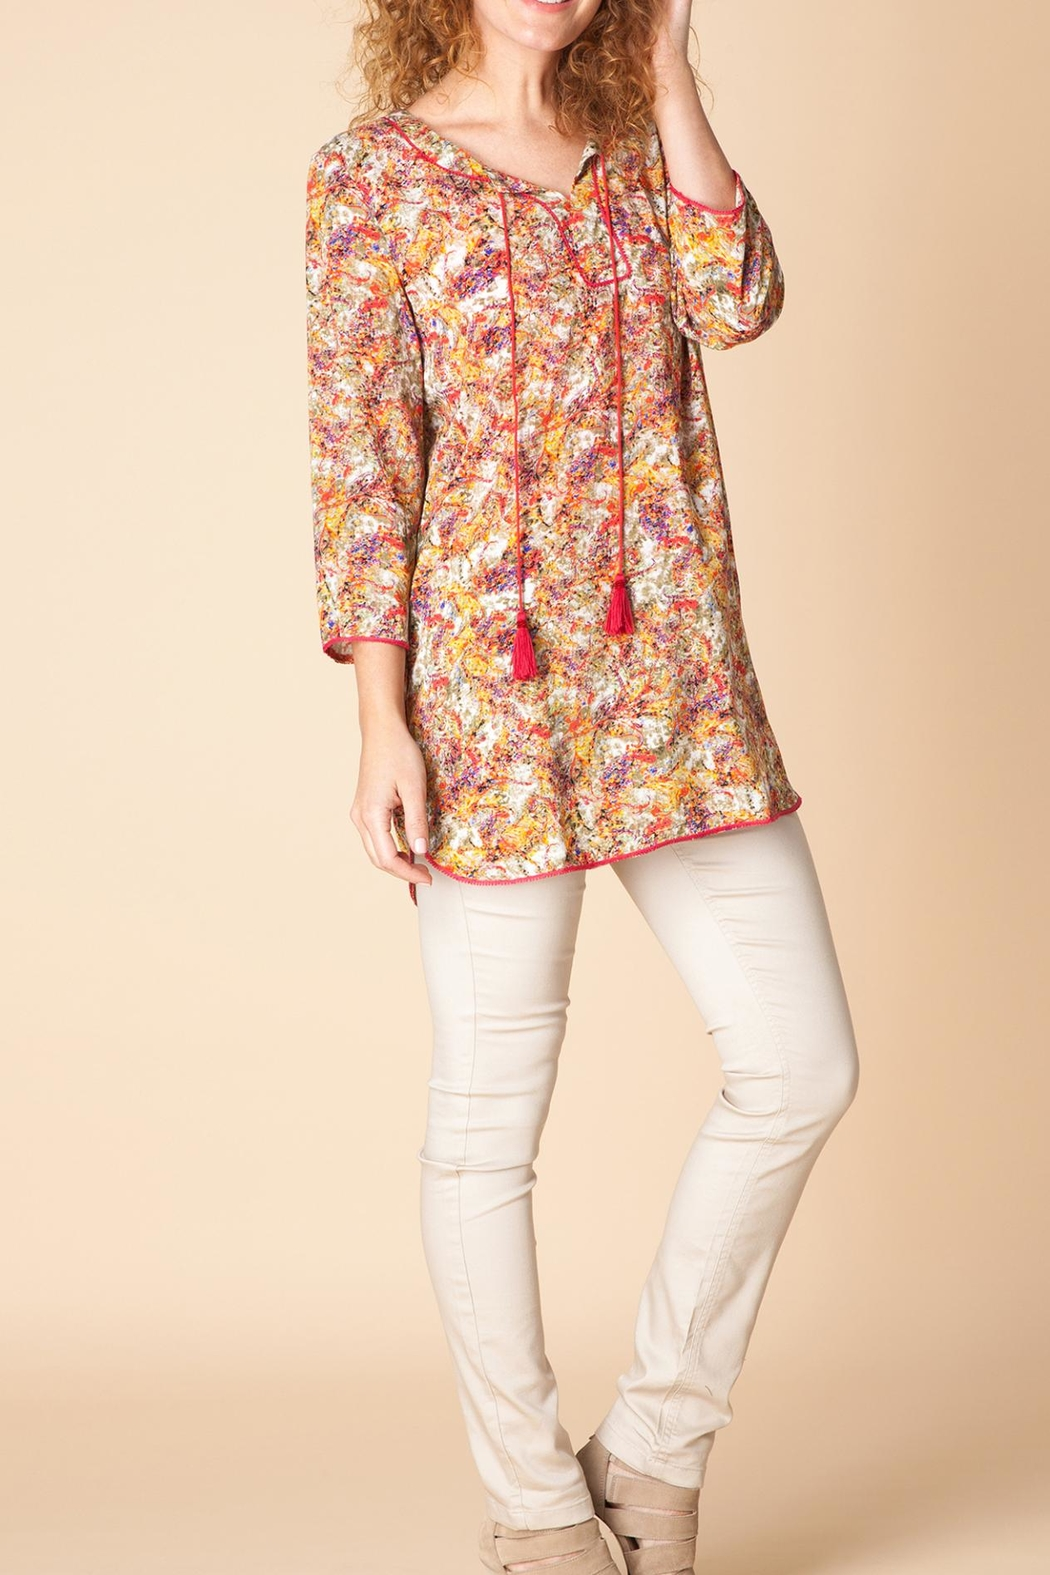 Yest Floral Print Tunic - Main Image